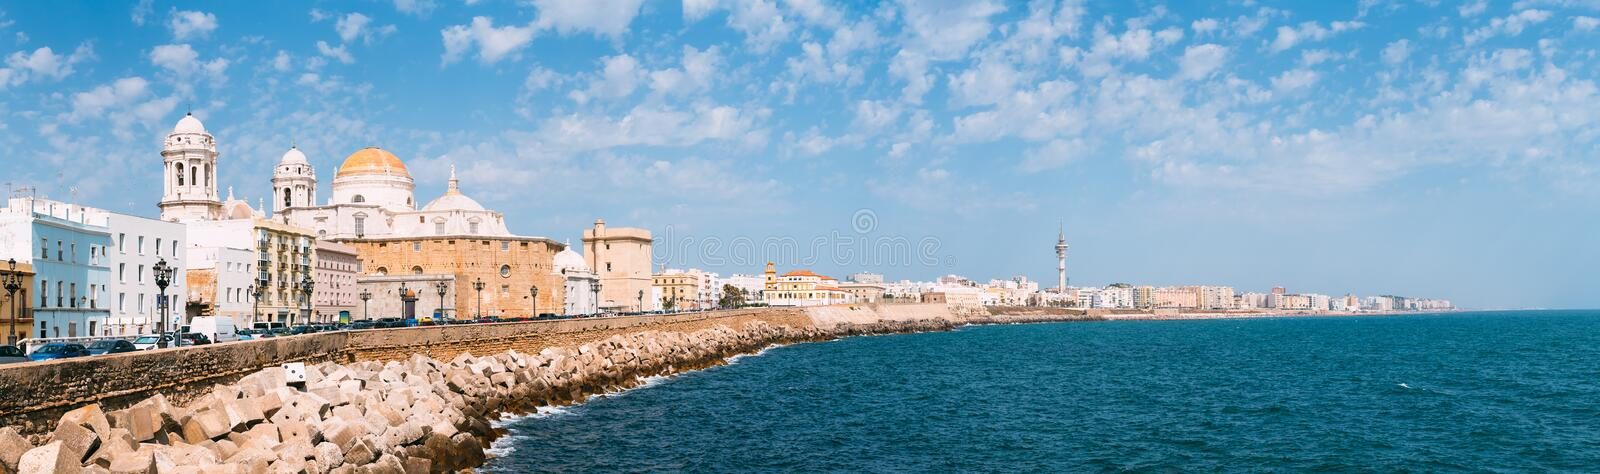 Panorama of Cadiz Cathedral and old town cityscape royalty free stock photography